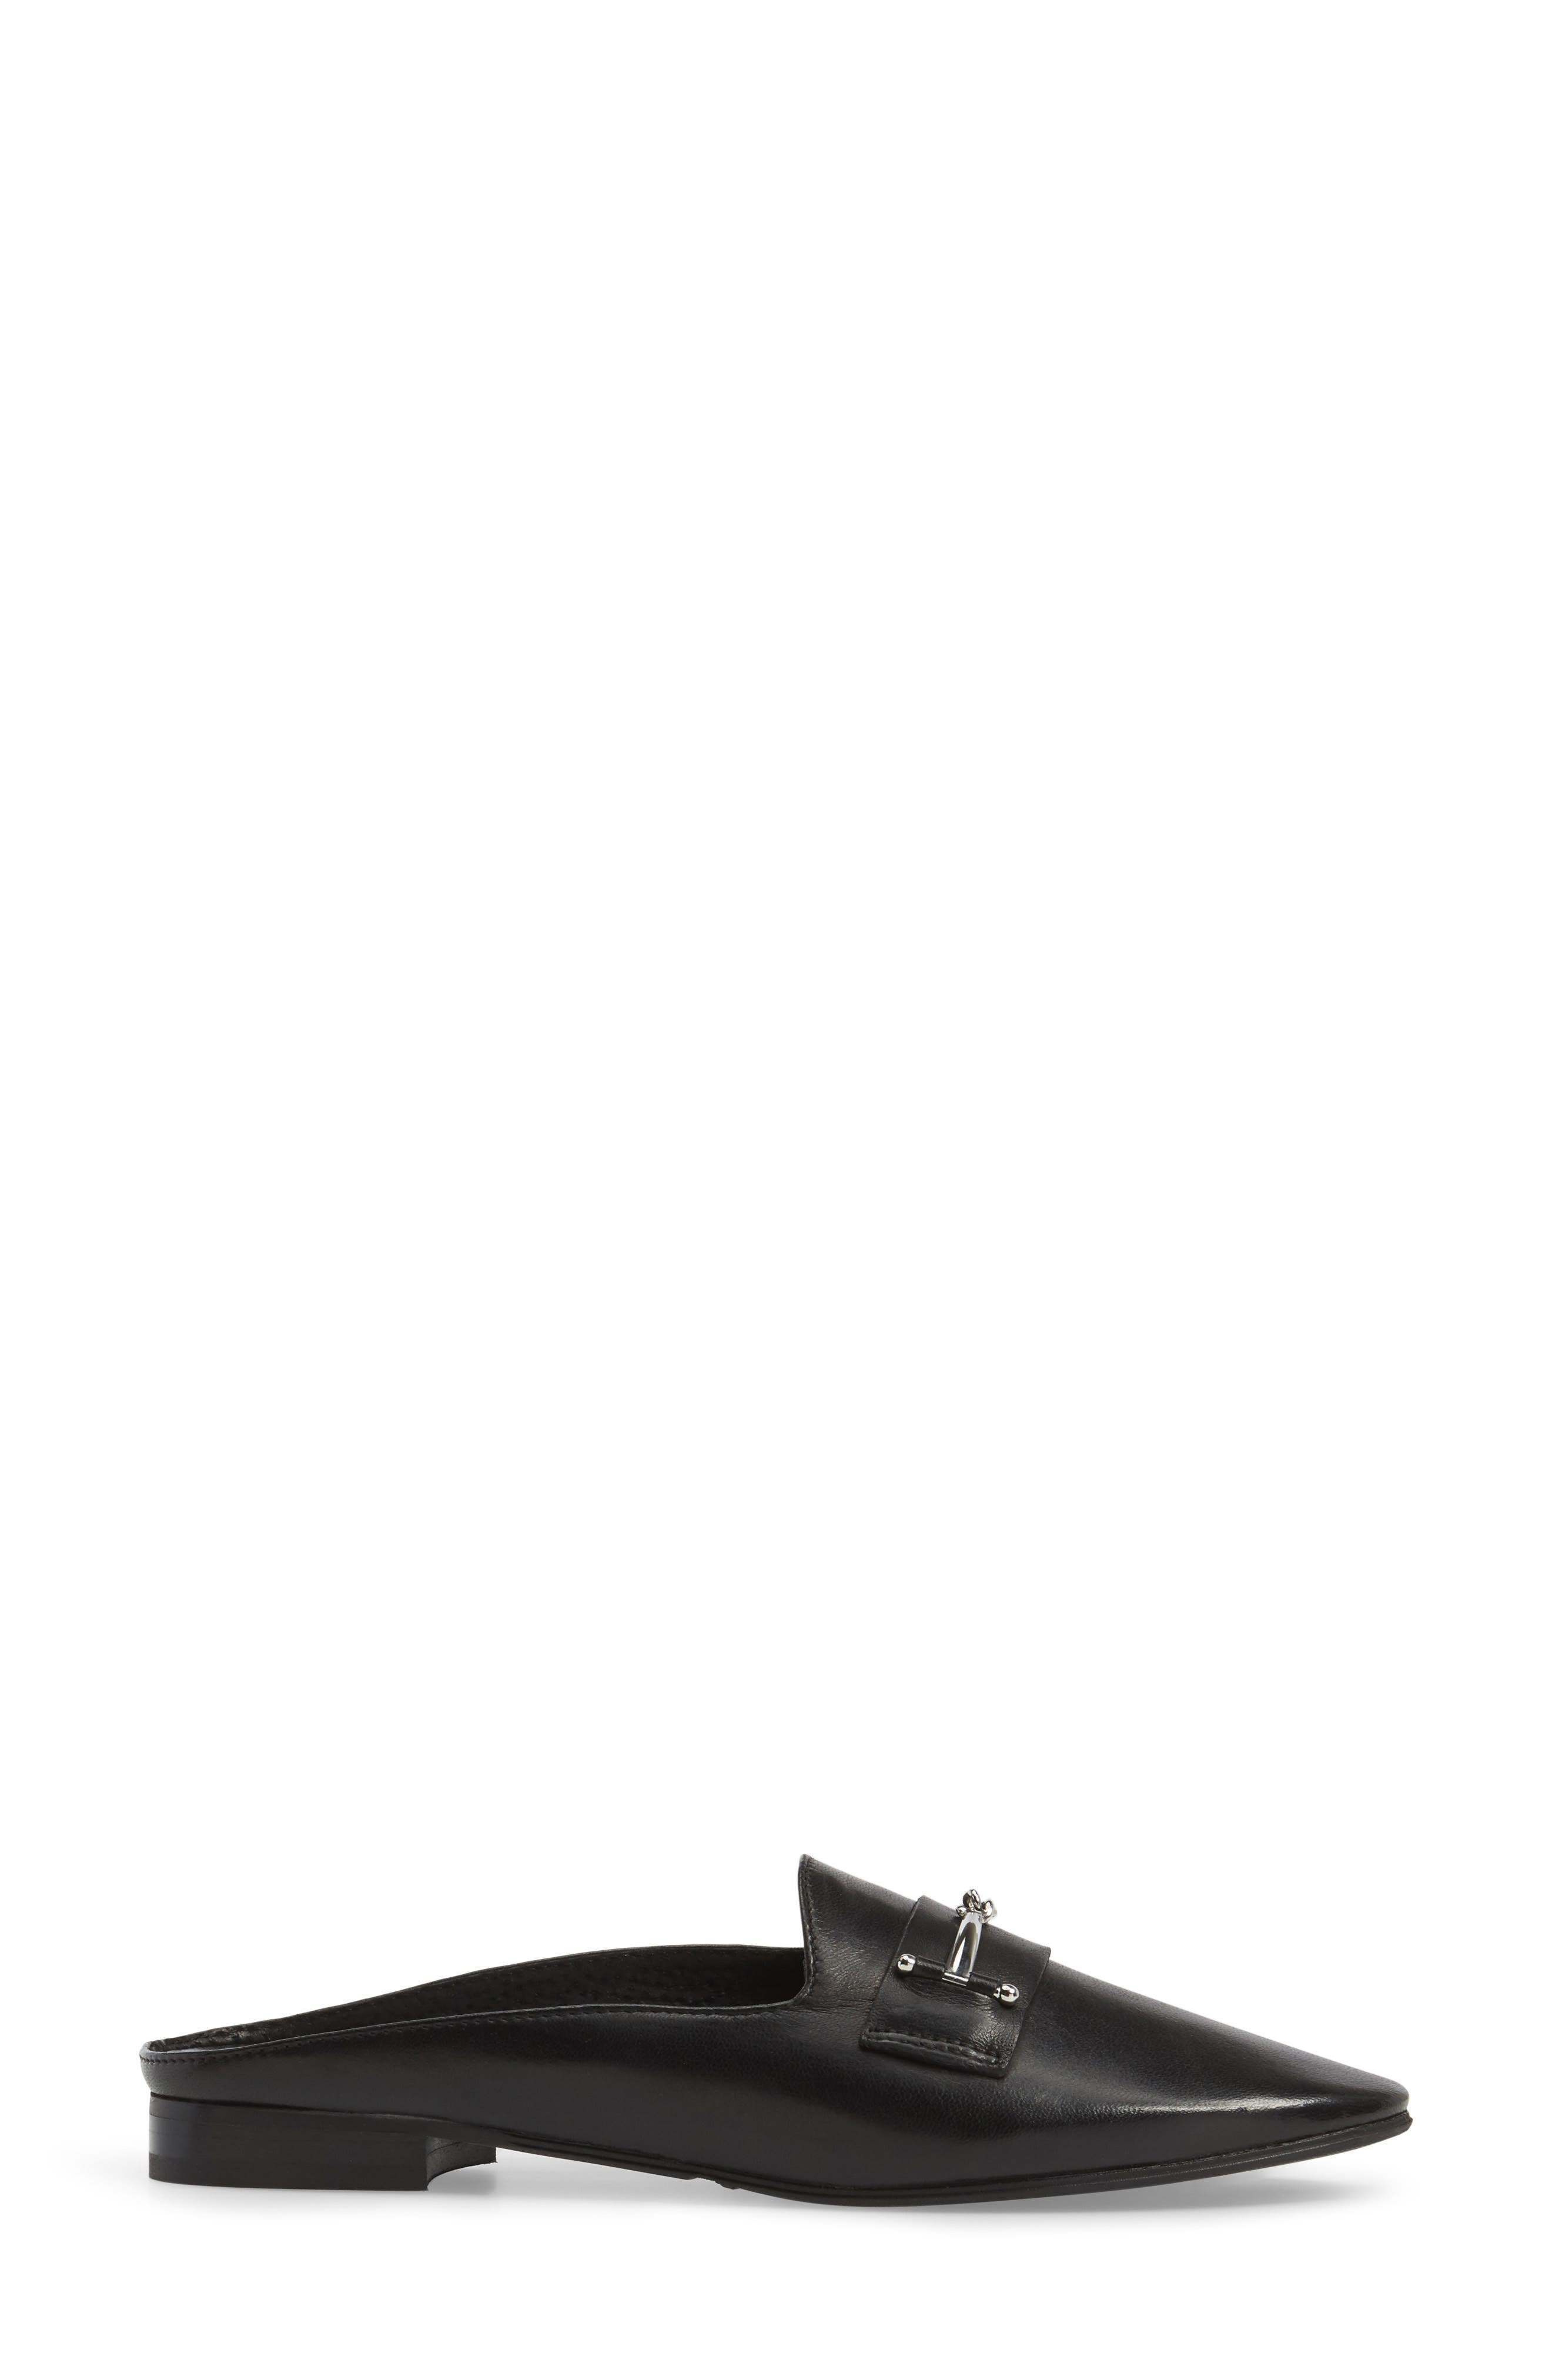 Melody Loafer Mule,                             Alternate thumbnail 3, color,                             001